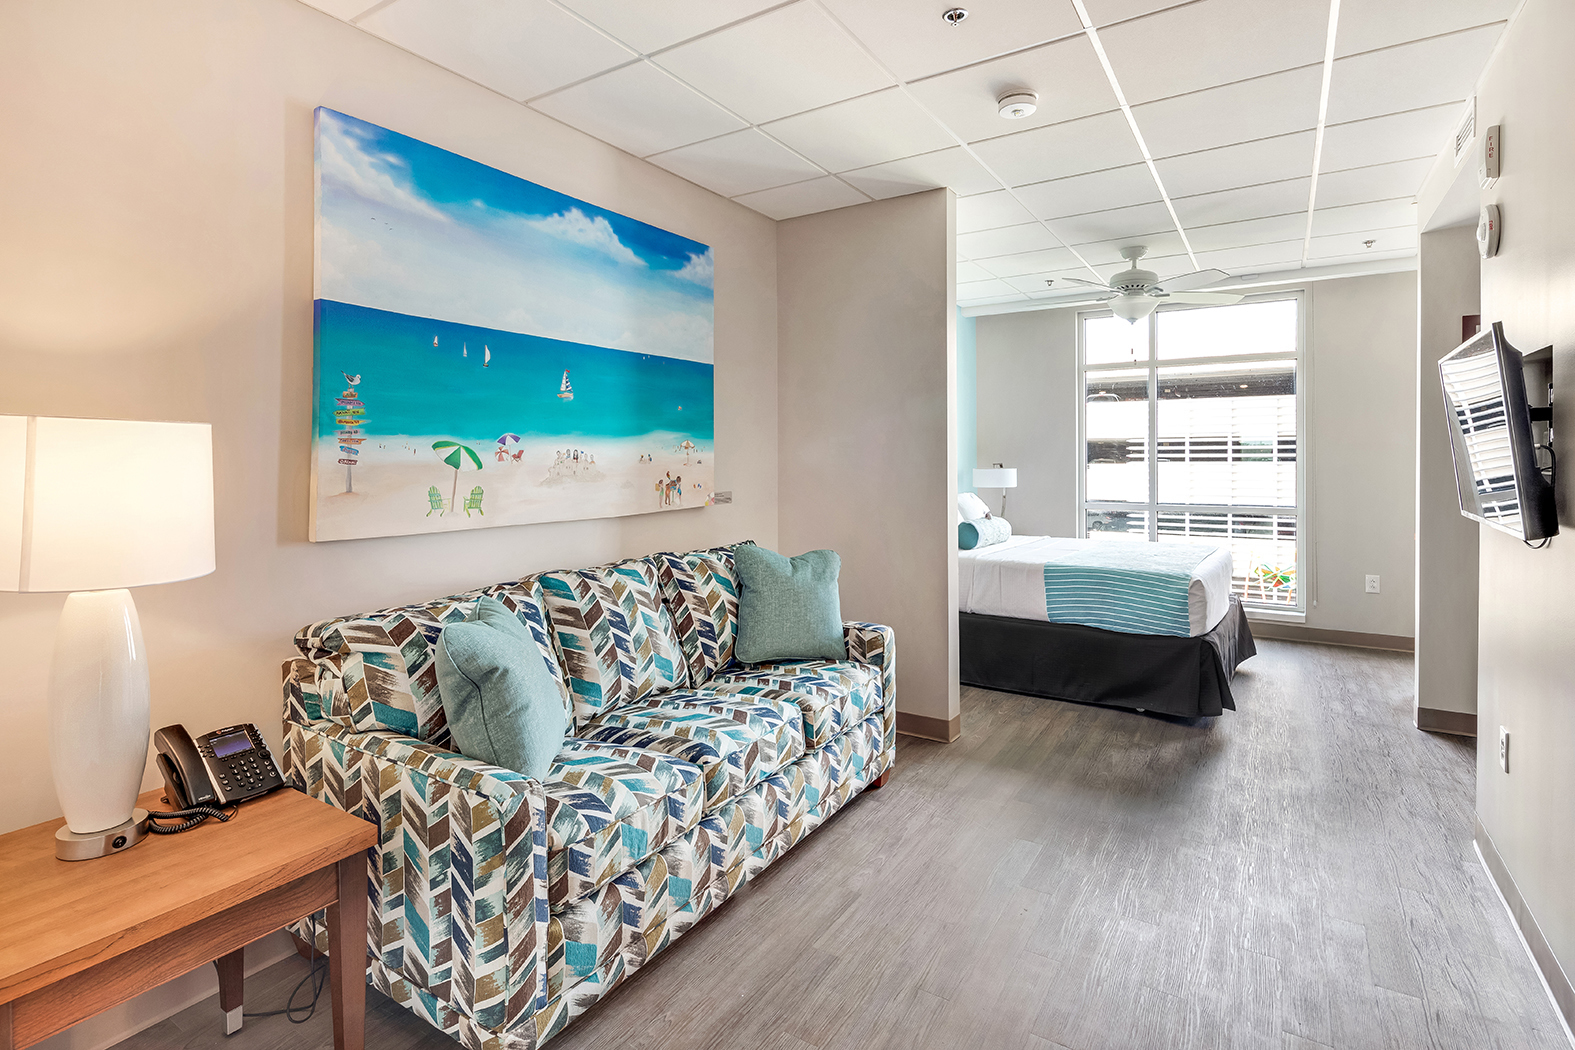 Patient suite with bed and sitting area